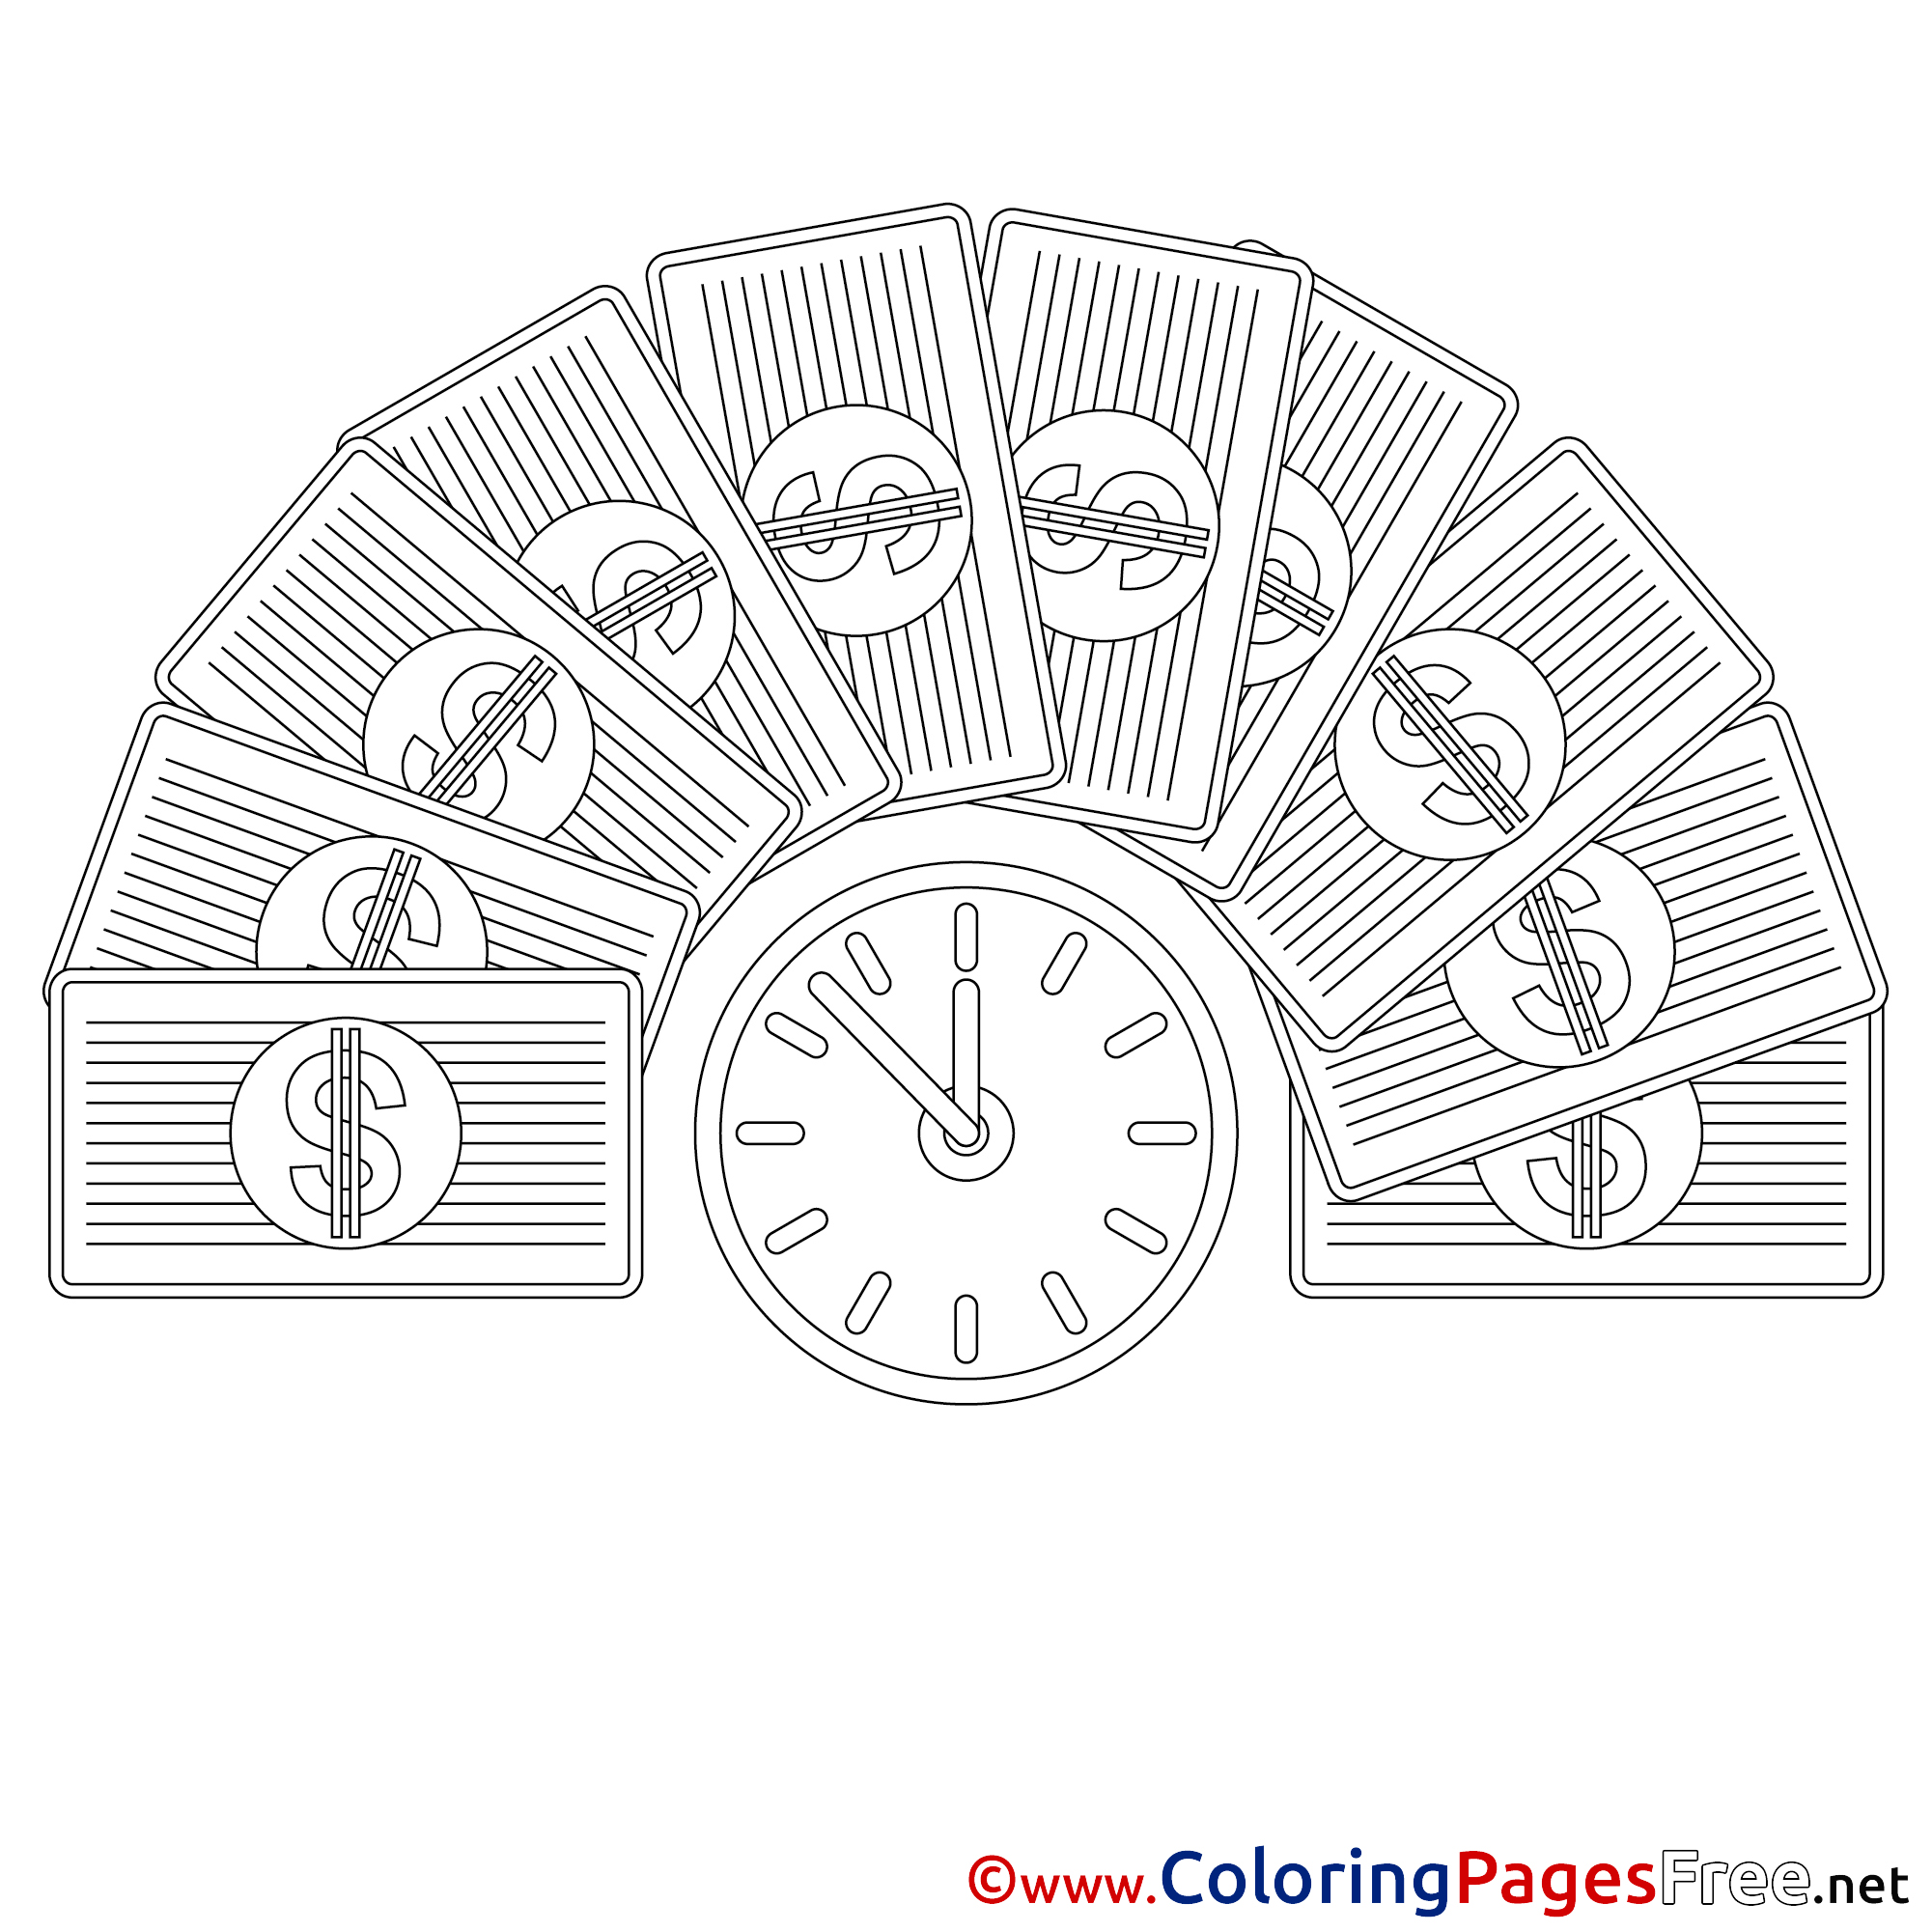 Money Tree coloring page | Free Printable Coloring Pages | 2001x2001